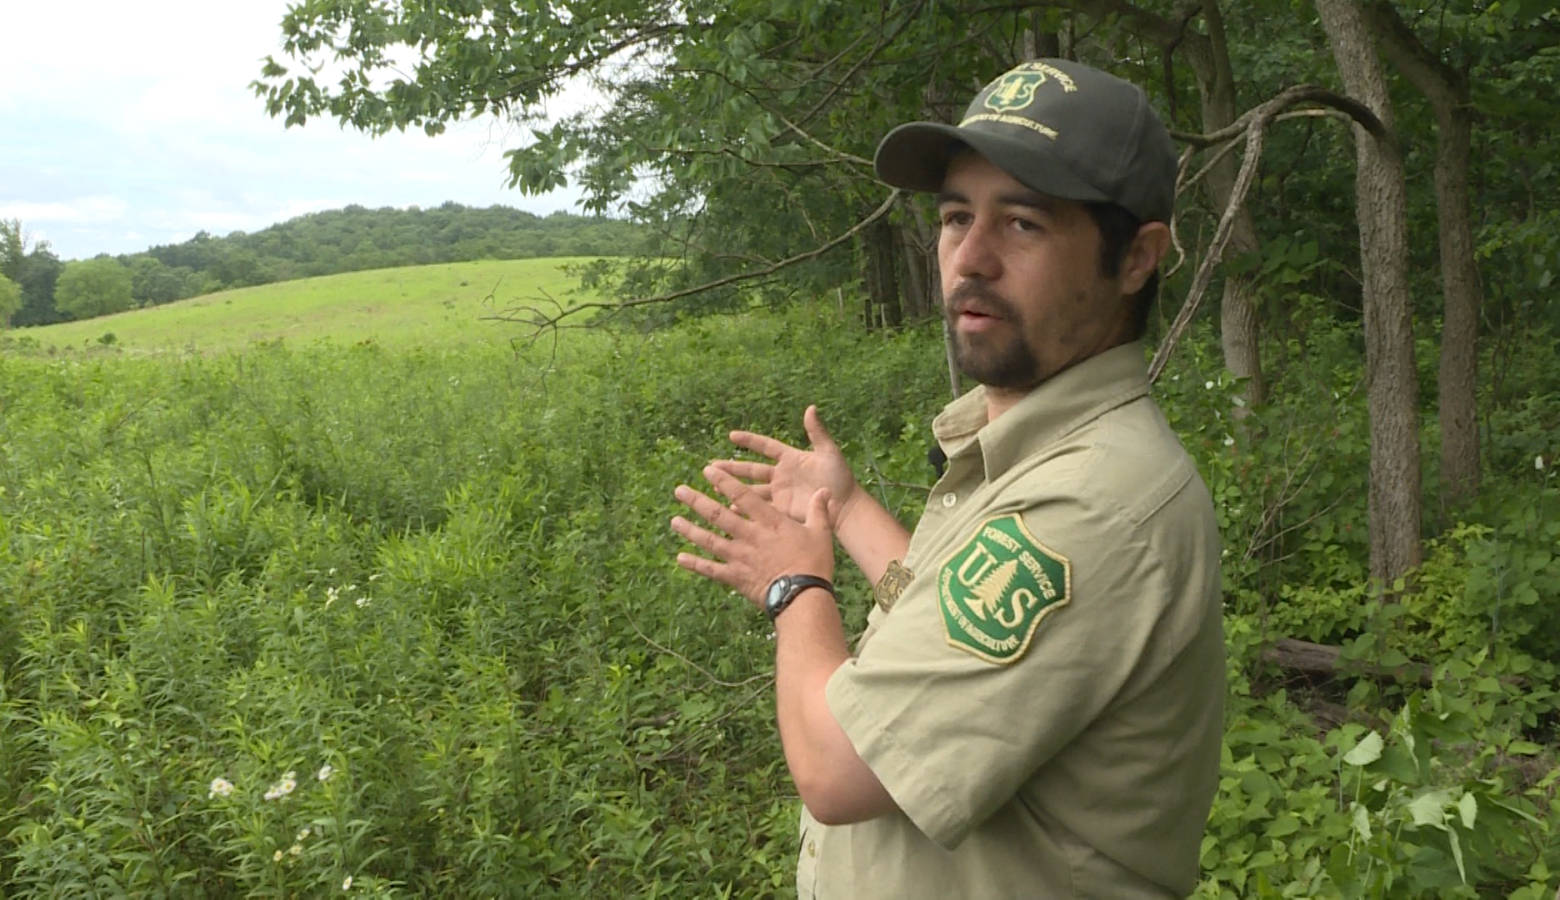 Hoosier National Forest Wildlife Technician Brian King gestures toward a forest opening the Forest Service has been managing to encourage diverse wildlife. (Rebecca Thiele/IPB News)